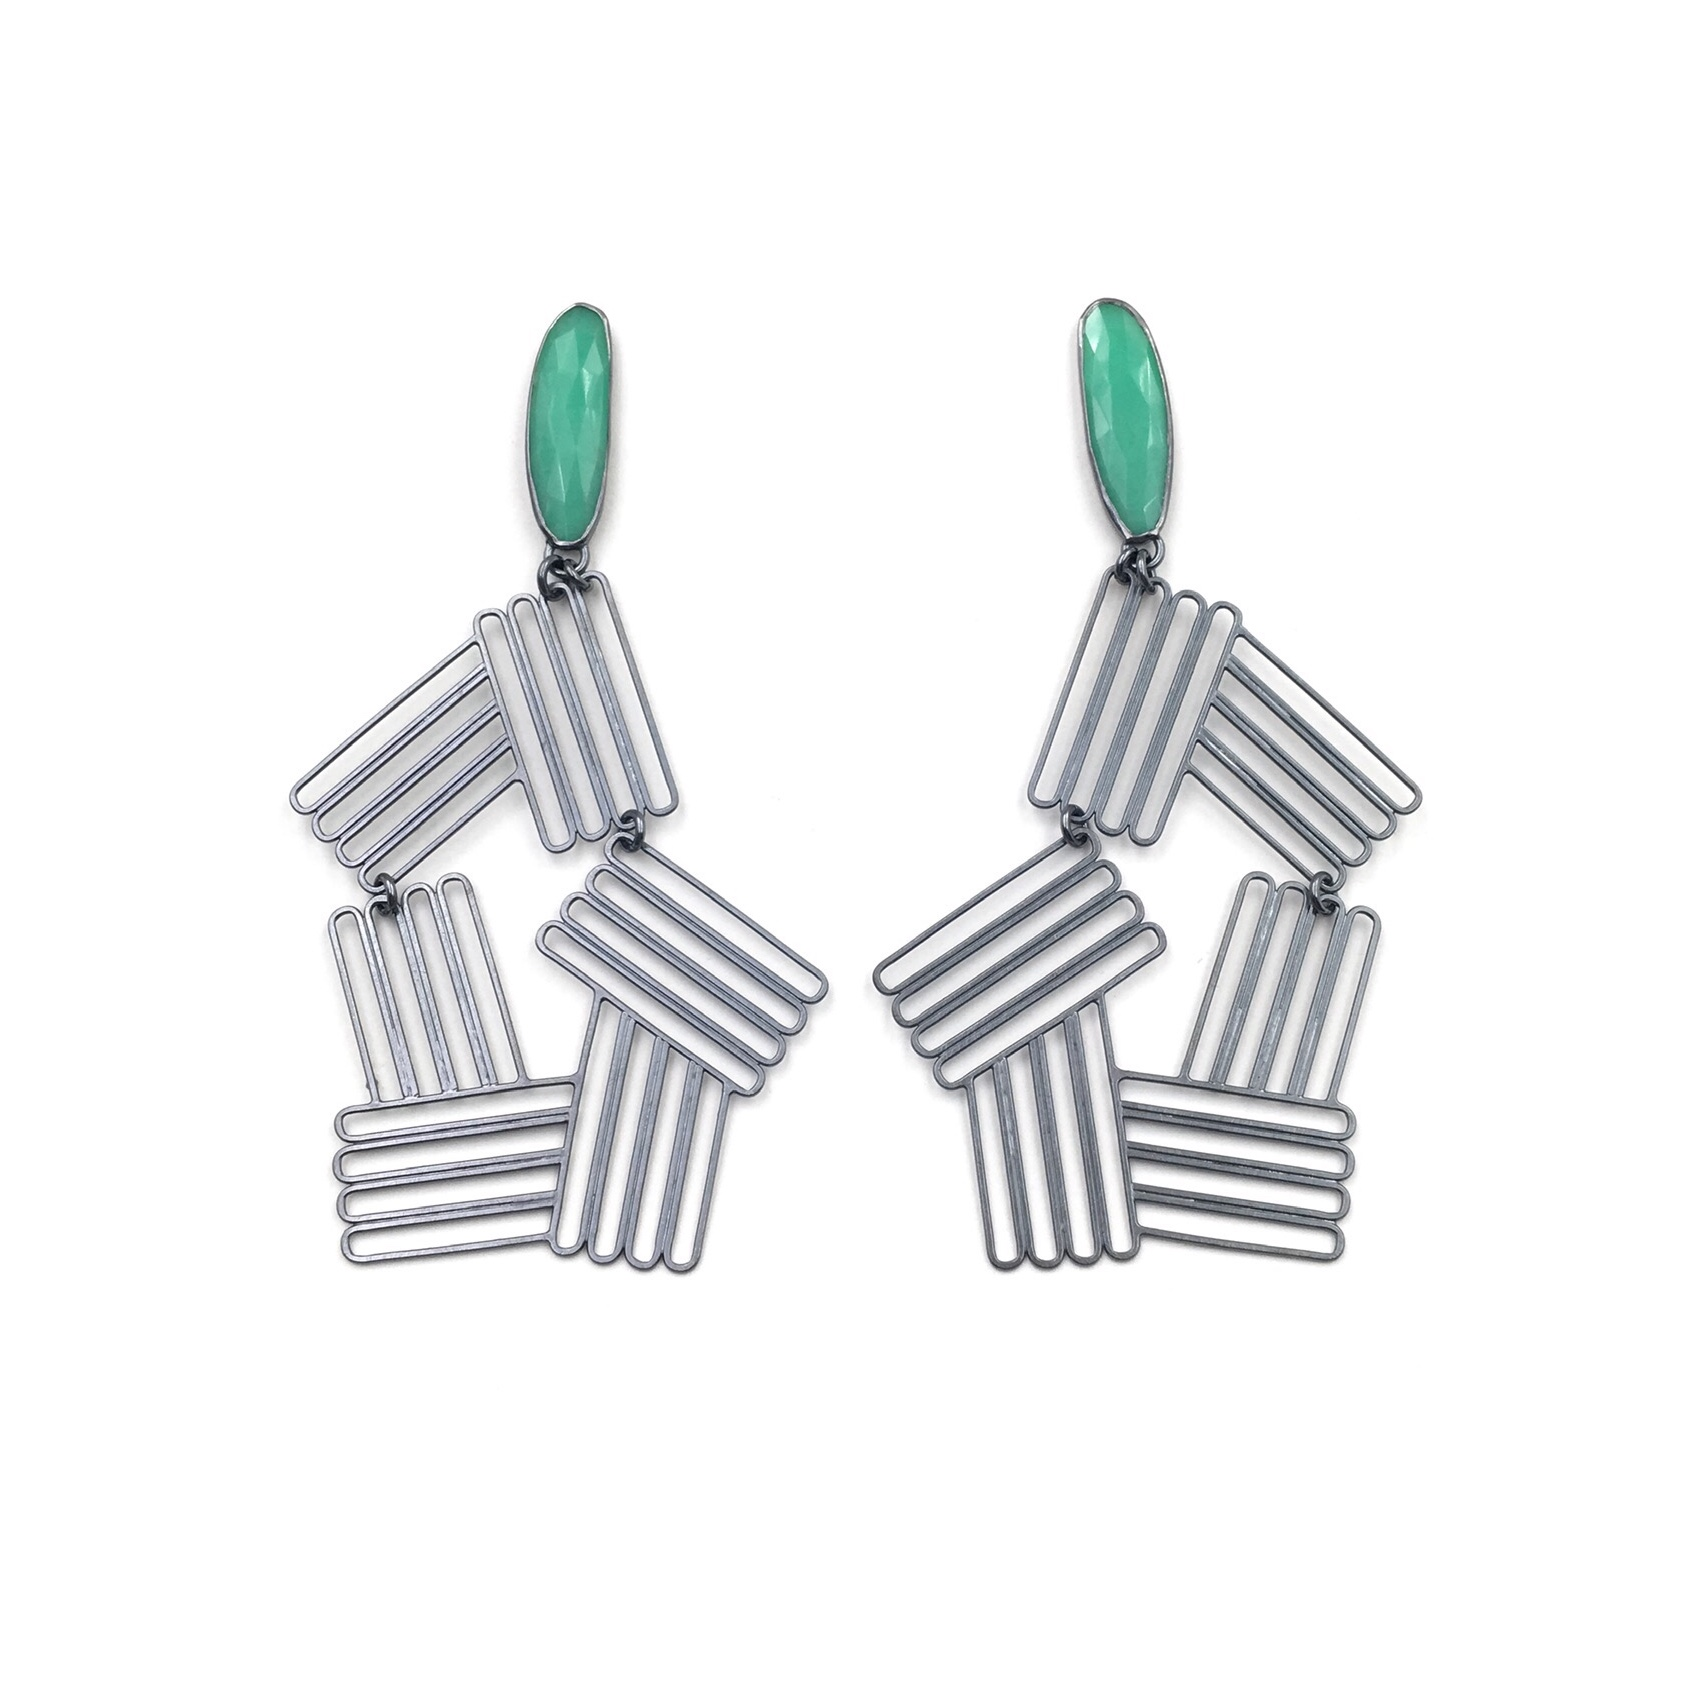 CHRYSOPRASE INTERSECTING STACK EARRINGS  Oxidized sterling silver, rose-cut chrysoprase